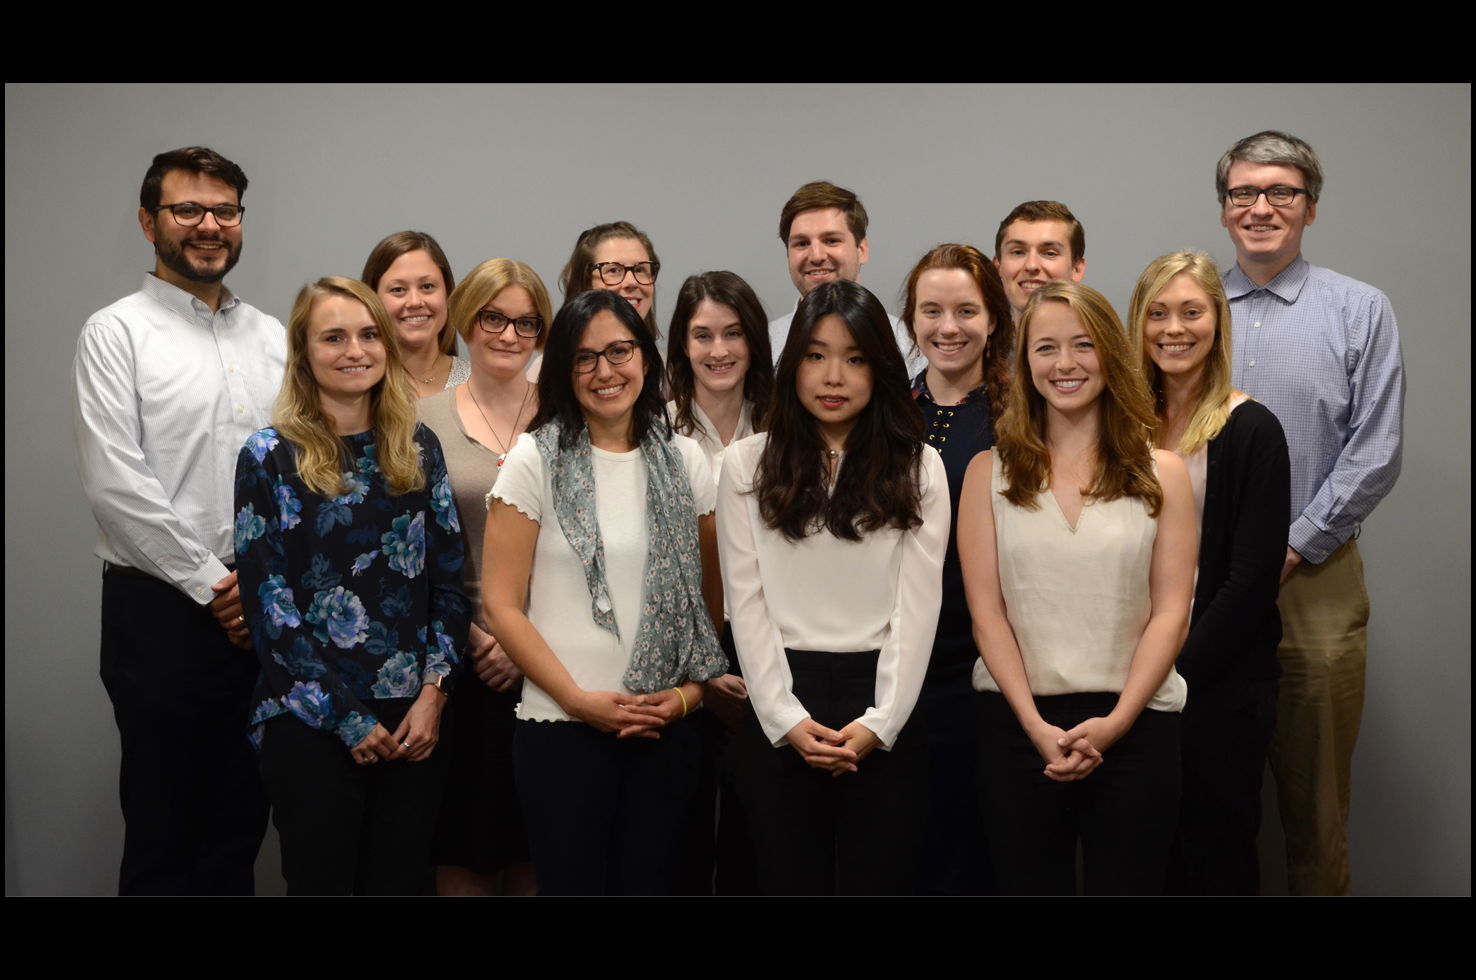 The Department of Psychiatry Welcomes Our New Residents | University